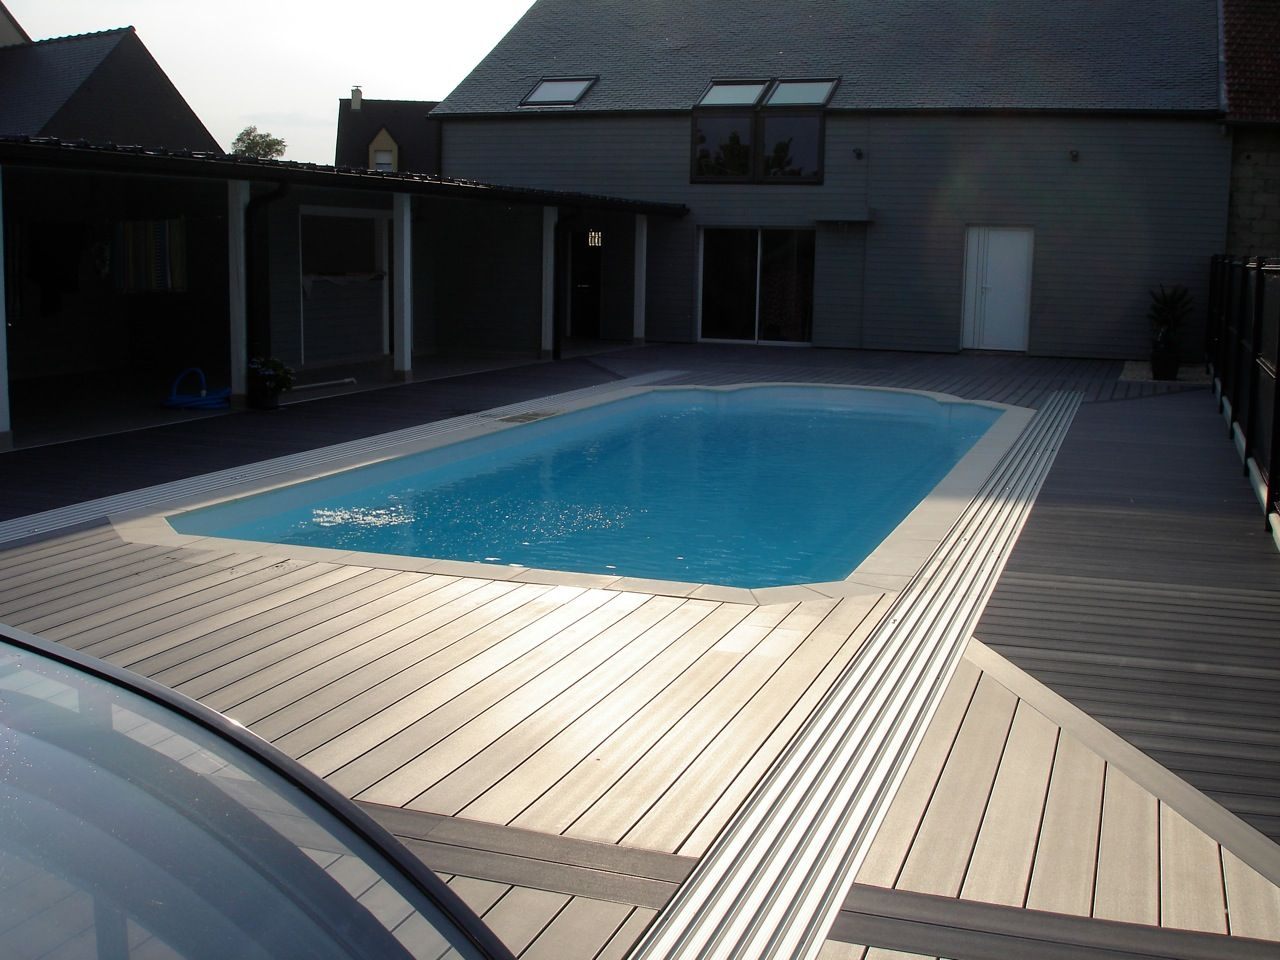 abri coulissant sur piscine avec terrasse bois composite rails int gr s piscine sous abri bas. Black Bedroom Furniture Sets. Home Design Ideas